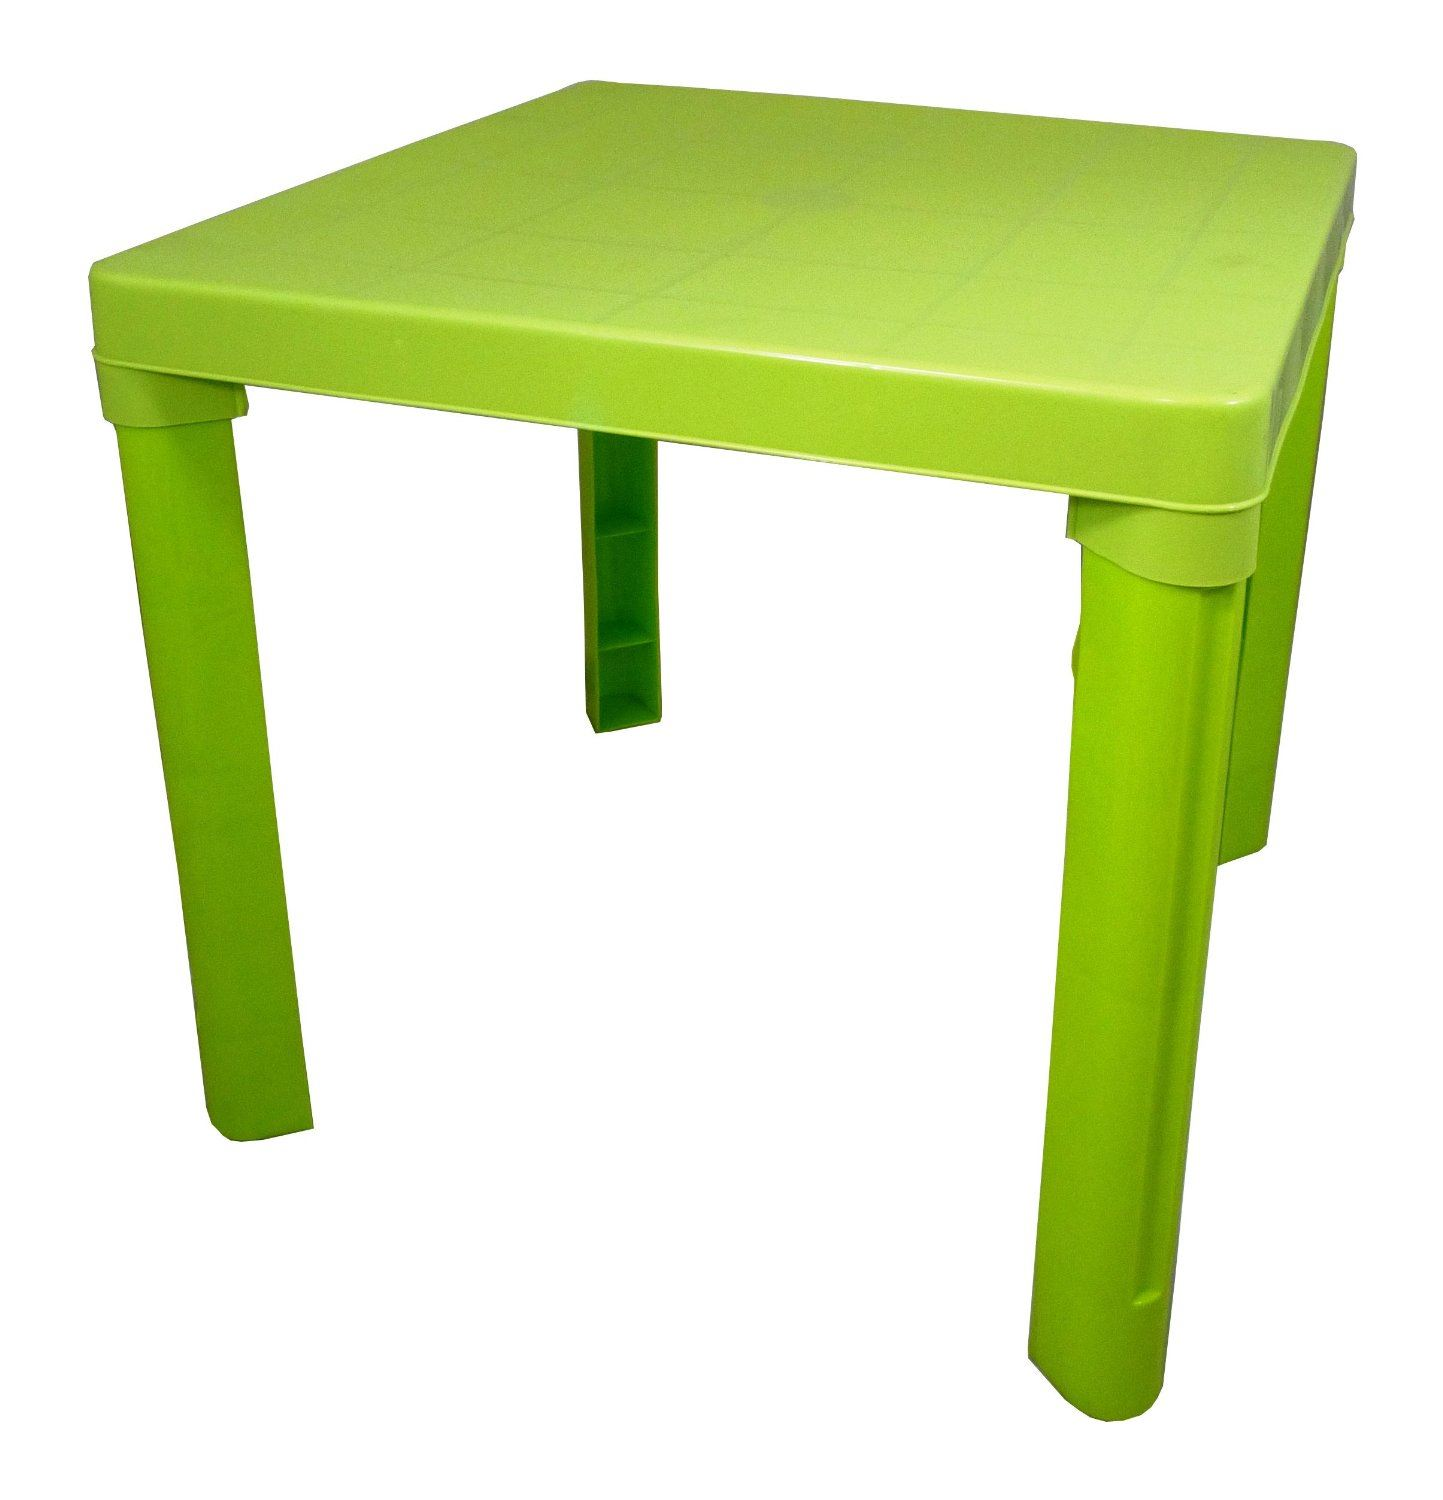 PLASTIC CHILDRENS TABLE & CHAIRS SET COLOURED NURSERY